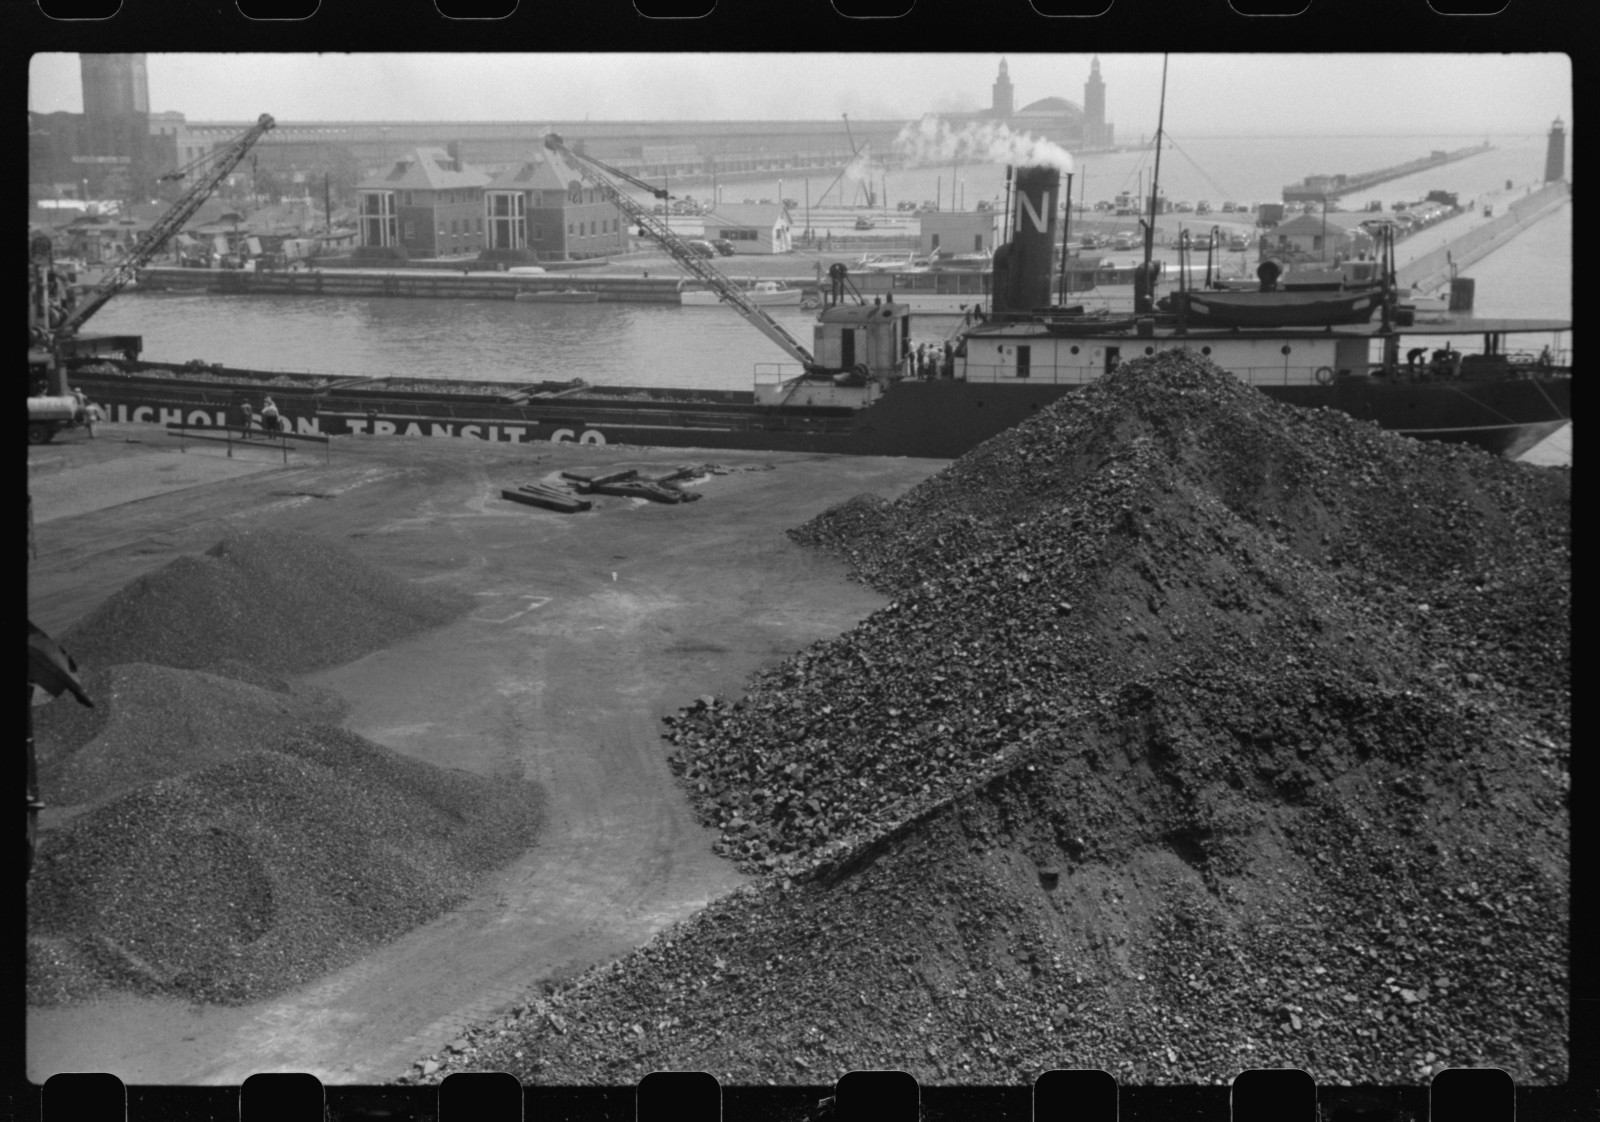 A Chicago coal dock in July, 1941. Coal transported on freighters through the Great Lakes fed many of the region's power plants during the past century.  Photo Credit: John Vachon / Library of Congress, Prints & Photographs Division, FSA/OWI Collection [LC-USF33-016112-M4]